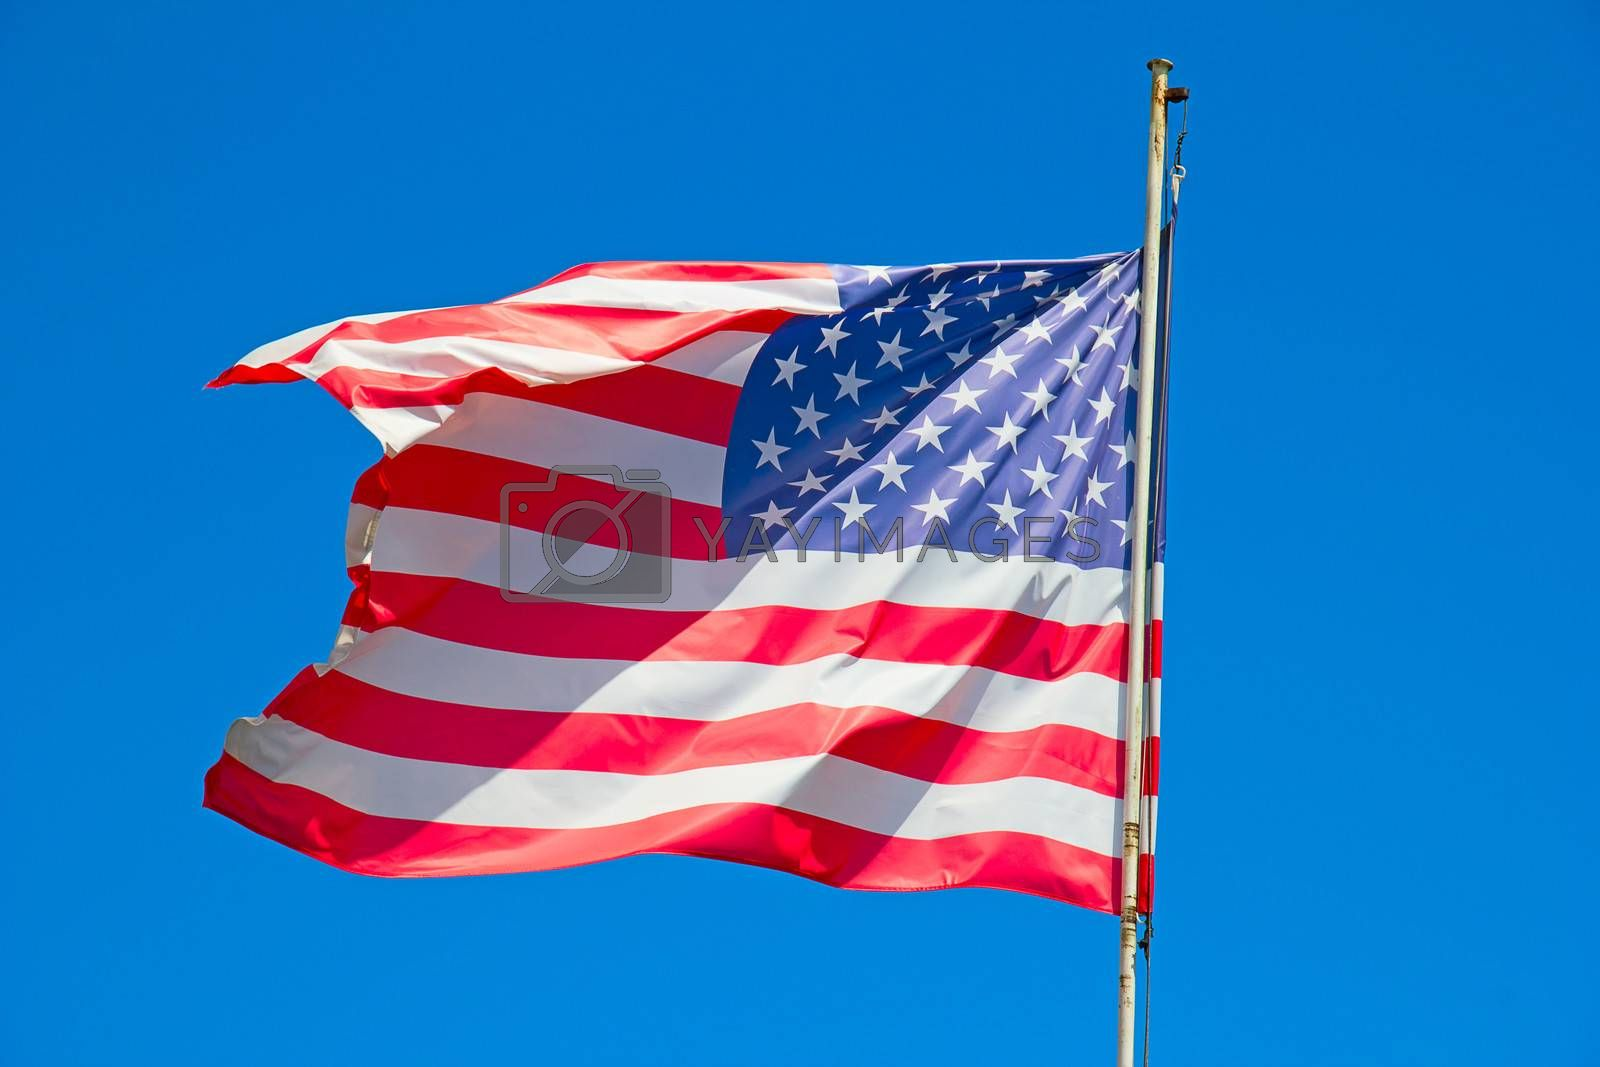 Royalty free image of US flag by swisshippo